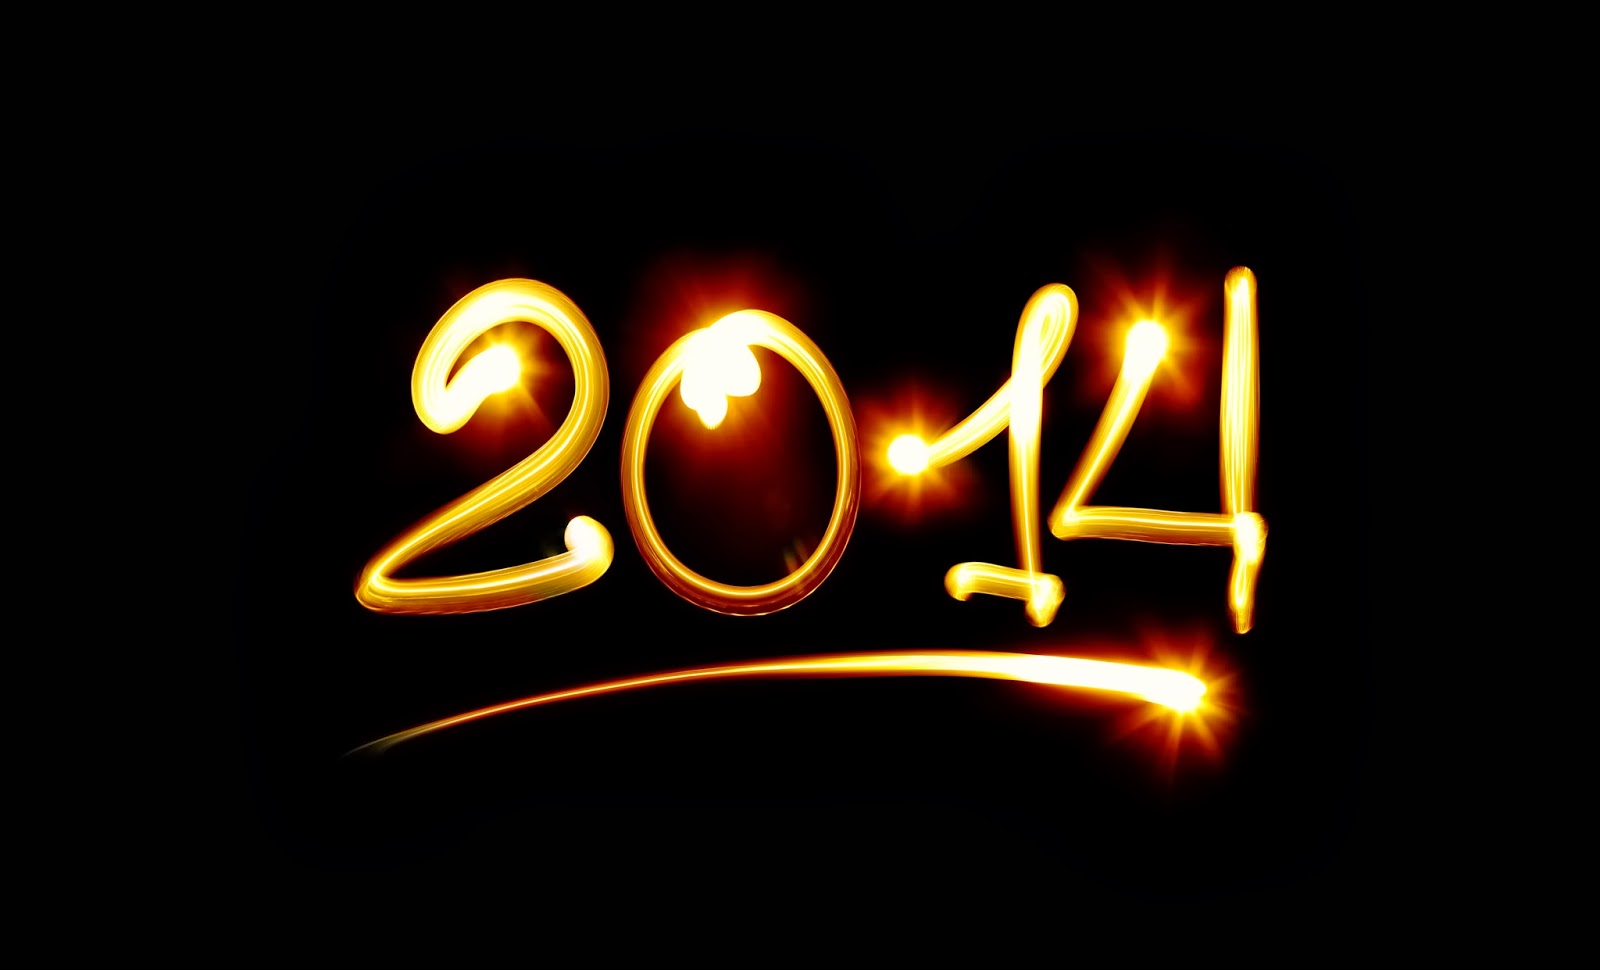 2014 Hd Wallpapers: Happy New Year Wallpapers 2014